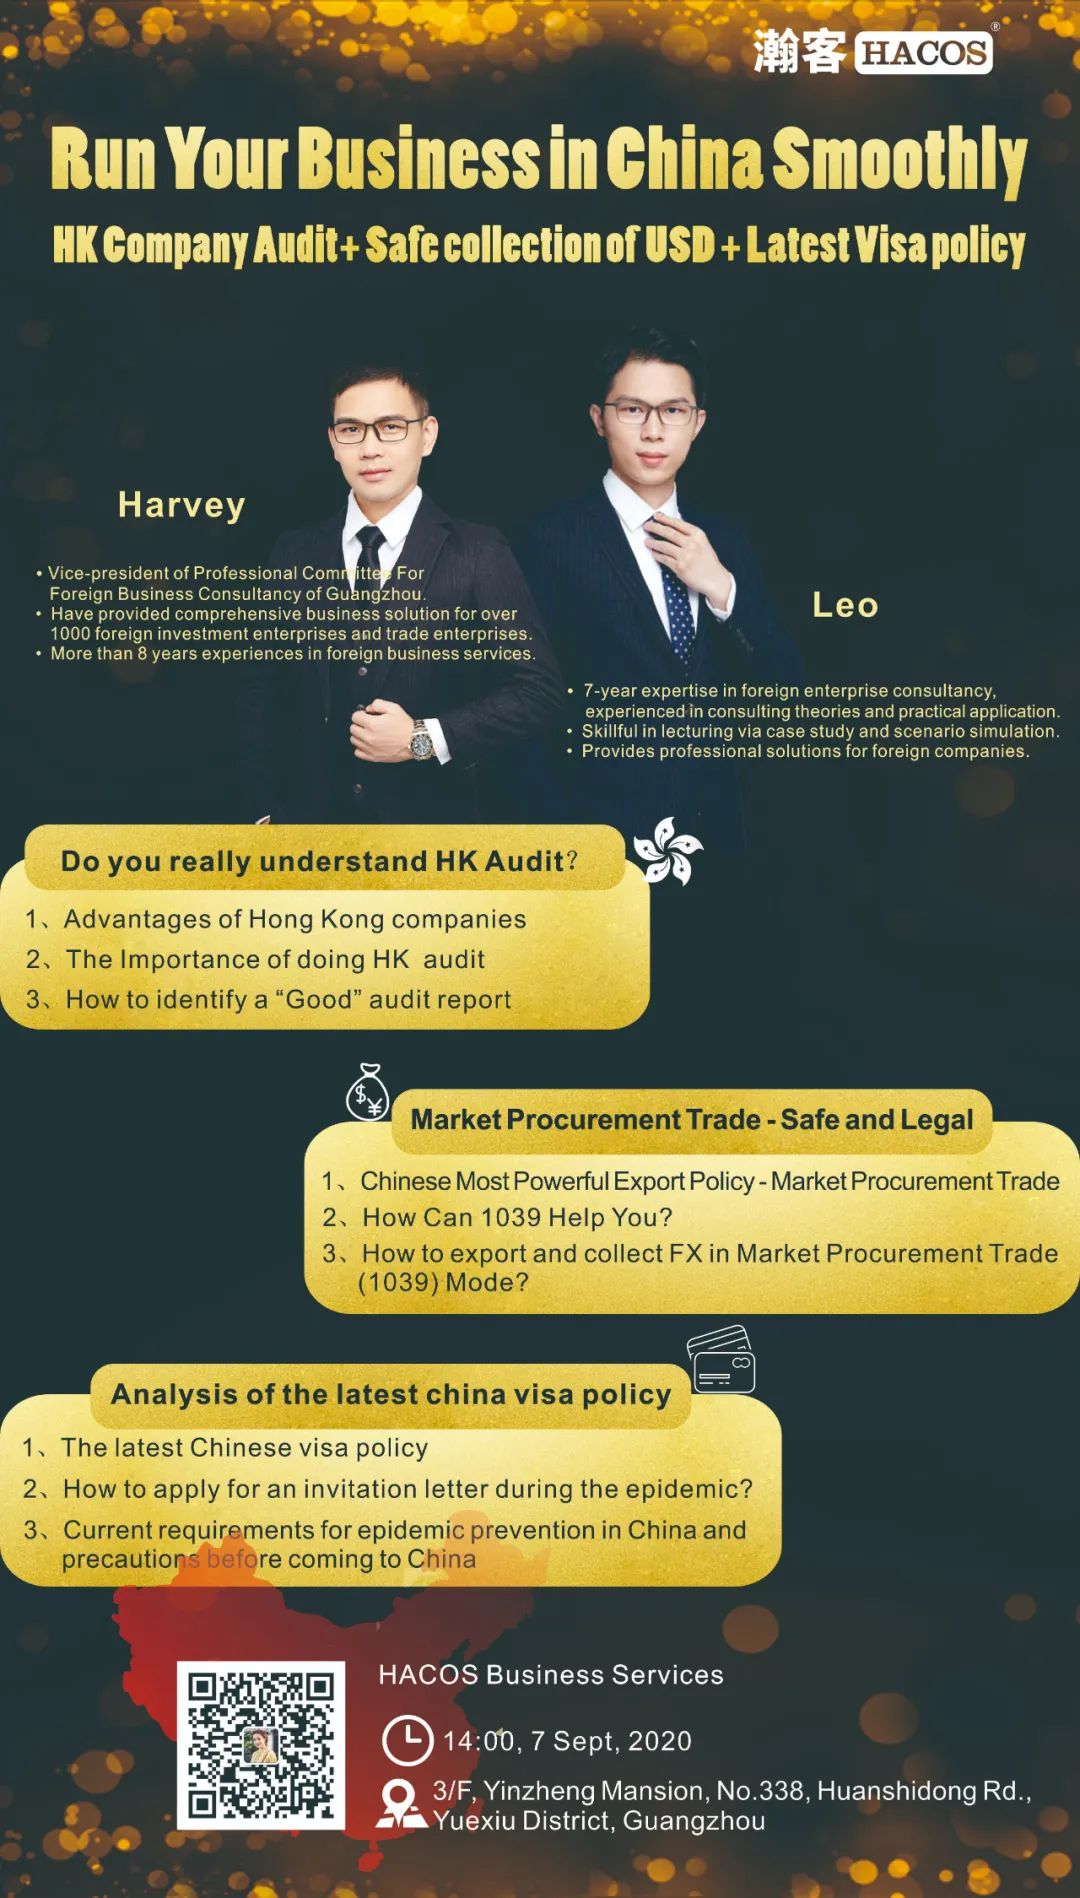 @Boss, Check Here to Know How to Run Business in China Smoothly!